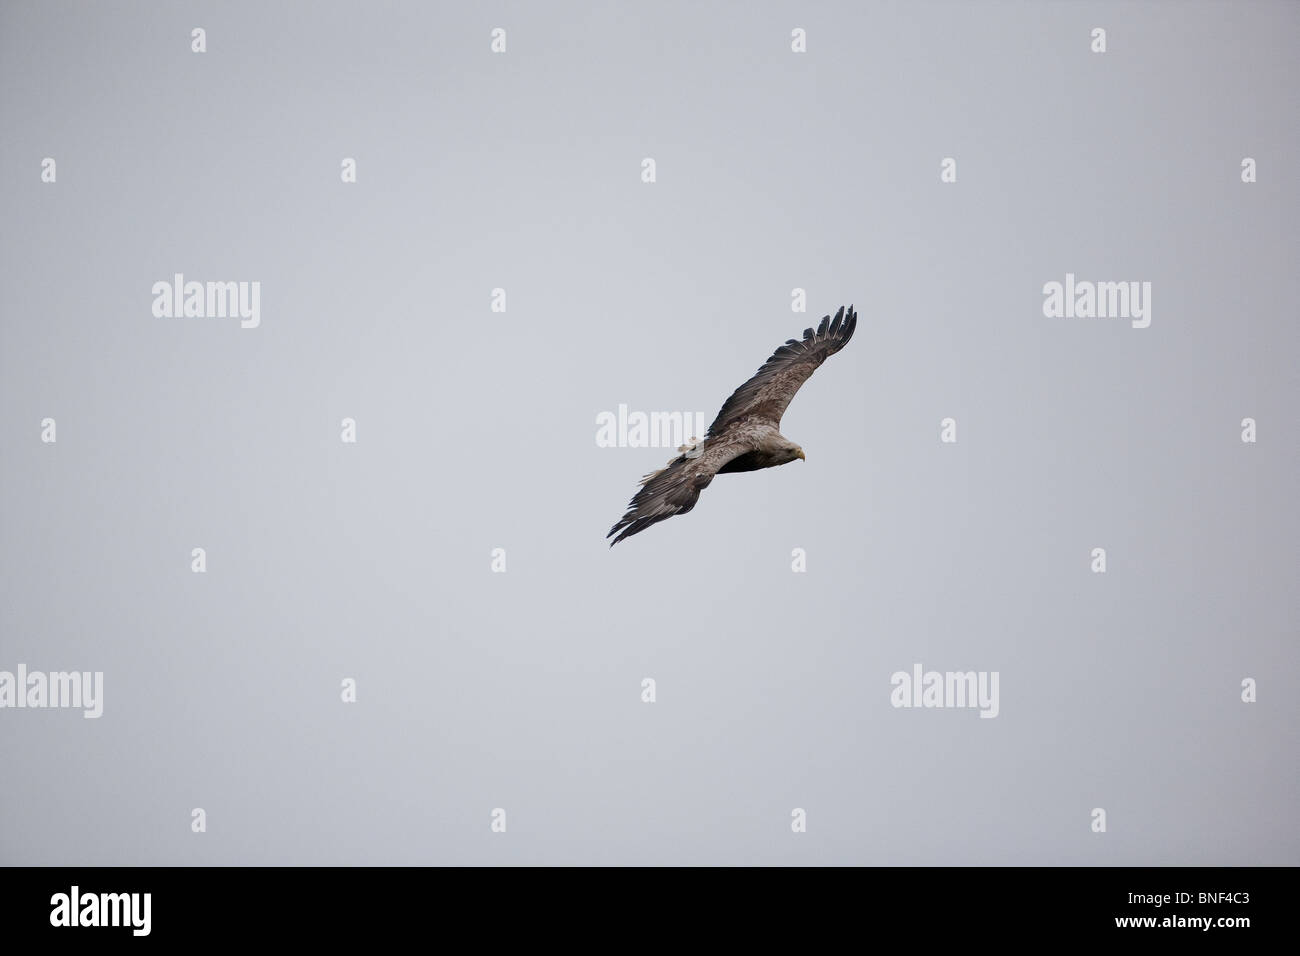 A White-tailed eagle, Haliaeetus albicilla, soaring in the mist above the island Runde on the Atlantic west coast, Norway. Stock Photo